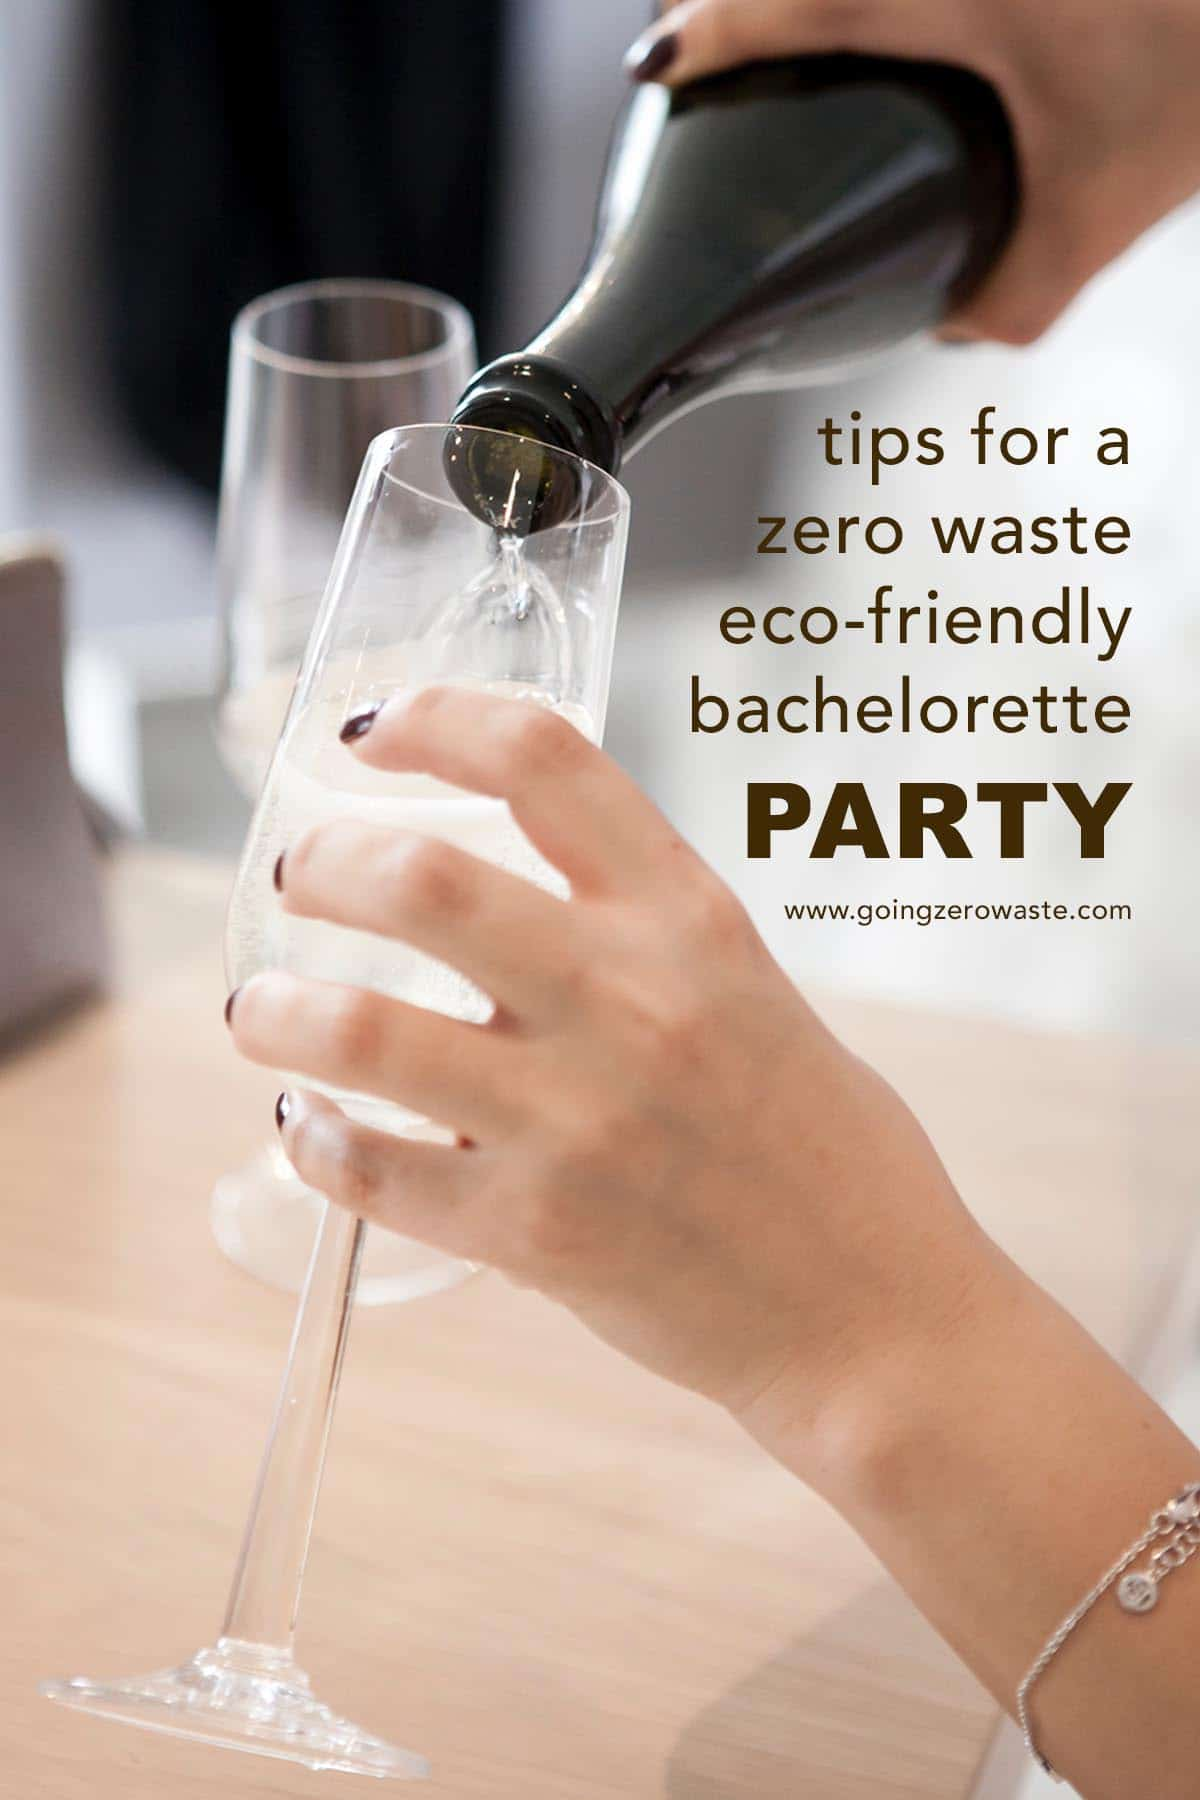 Tips for throwing an eco-friendly and sustainable bachelorette party